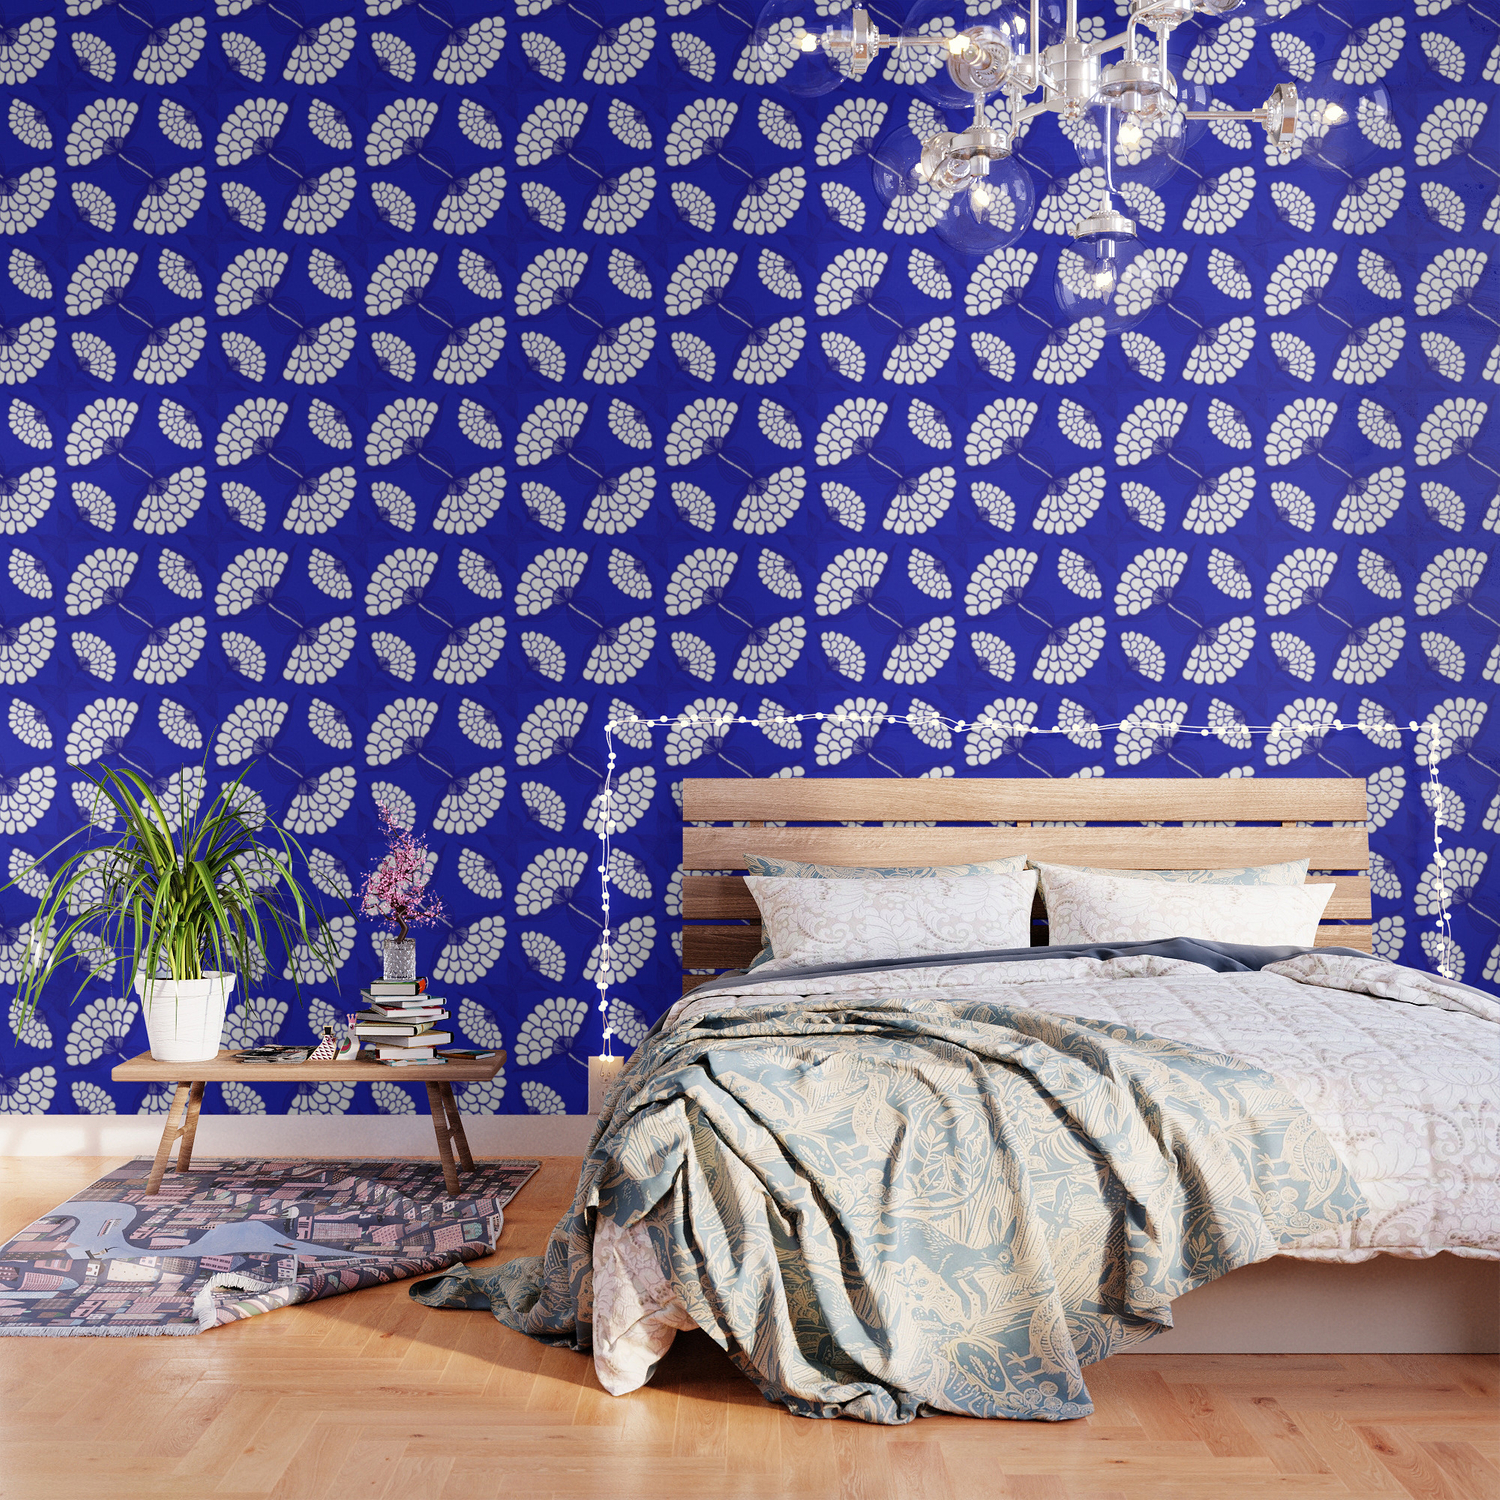 African Floral Motif On Royal Blue Wallpaper By Wellingtonboot